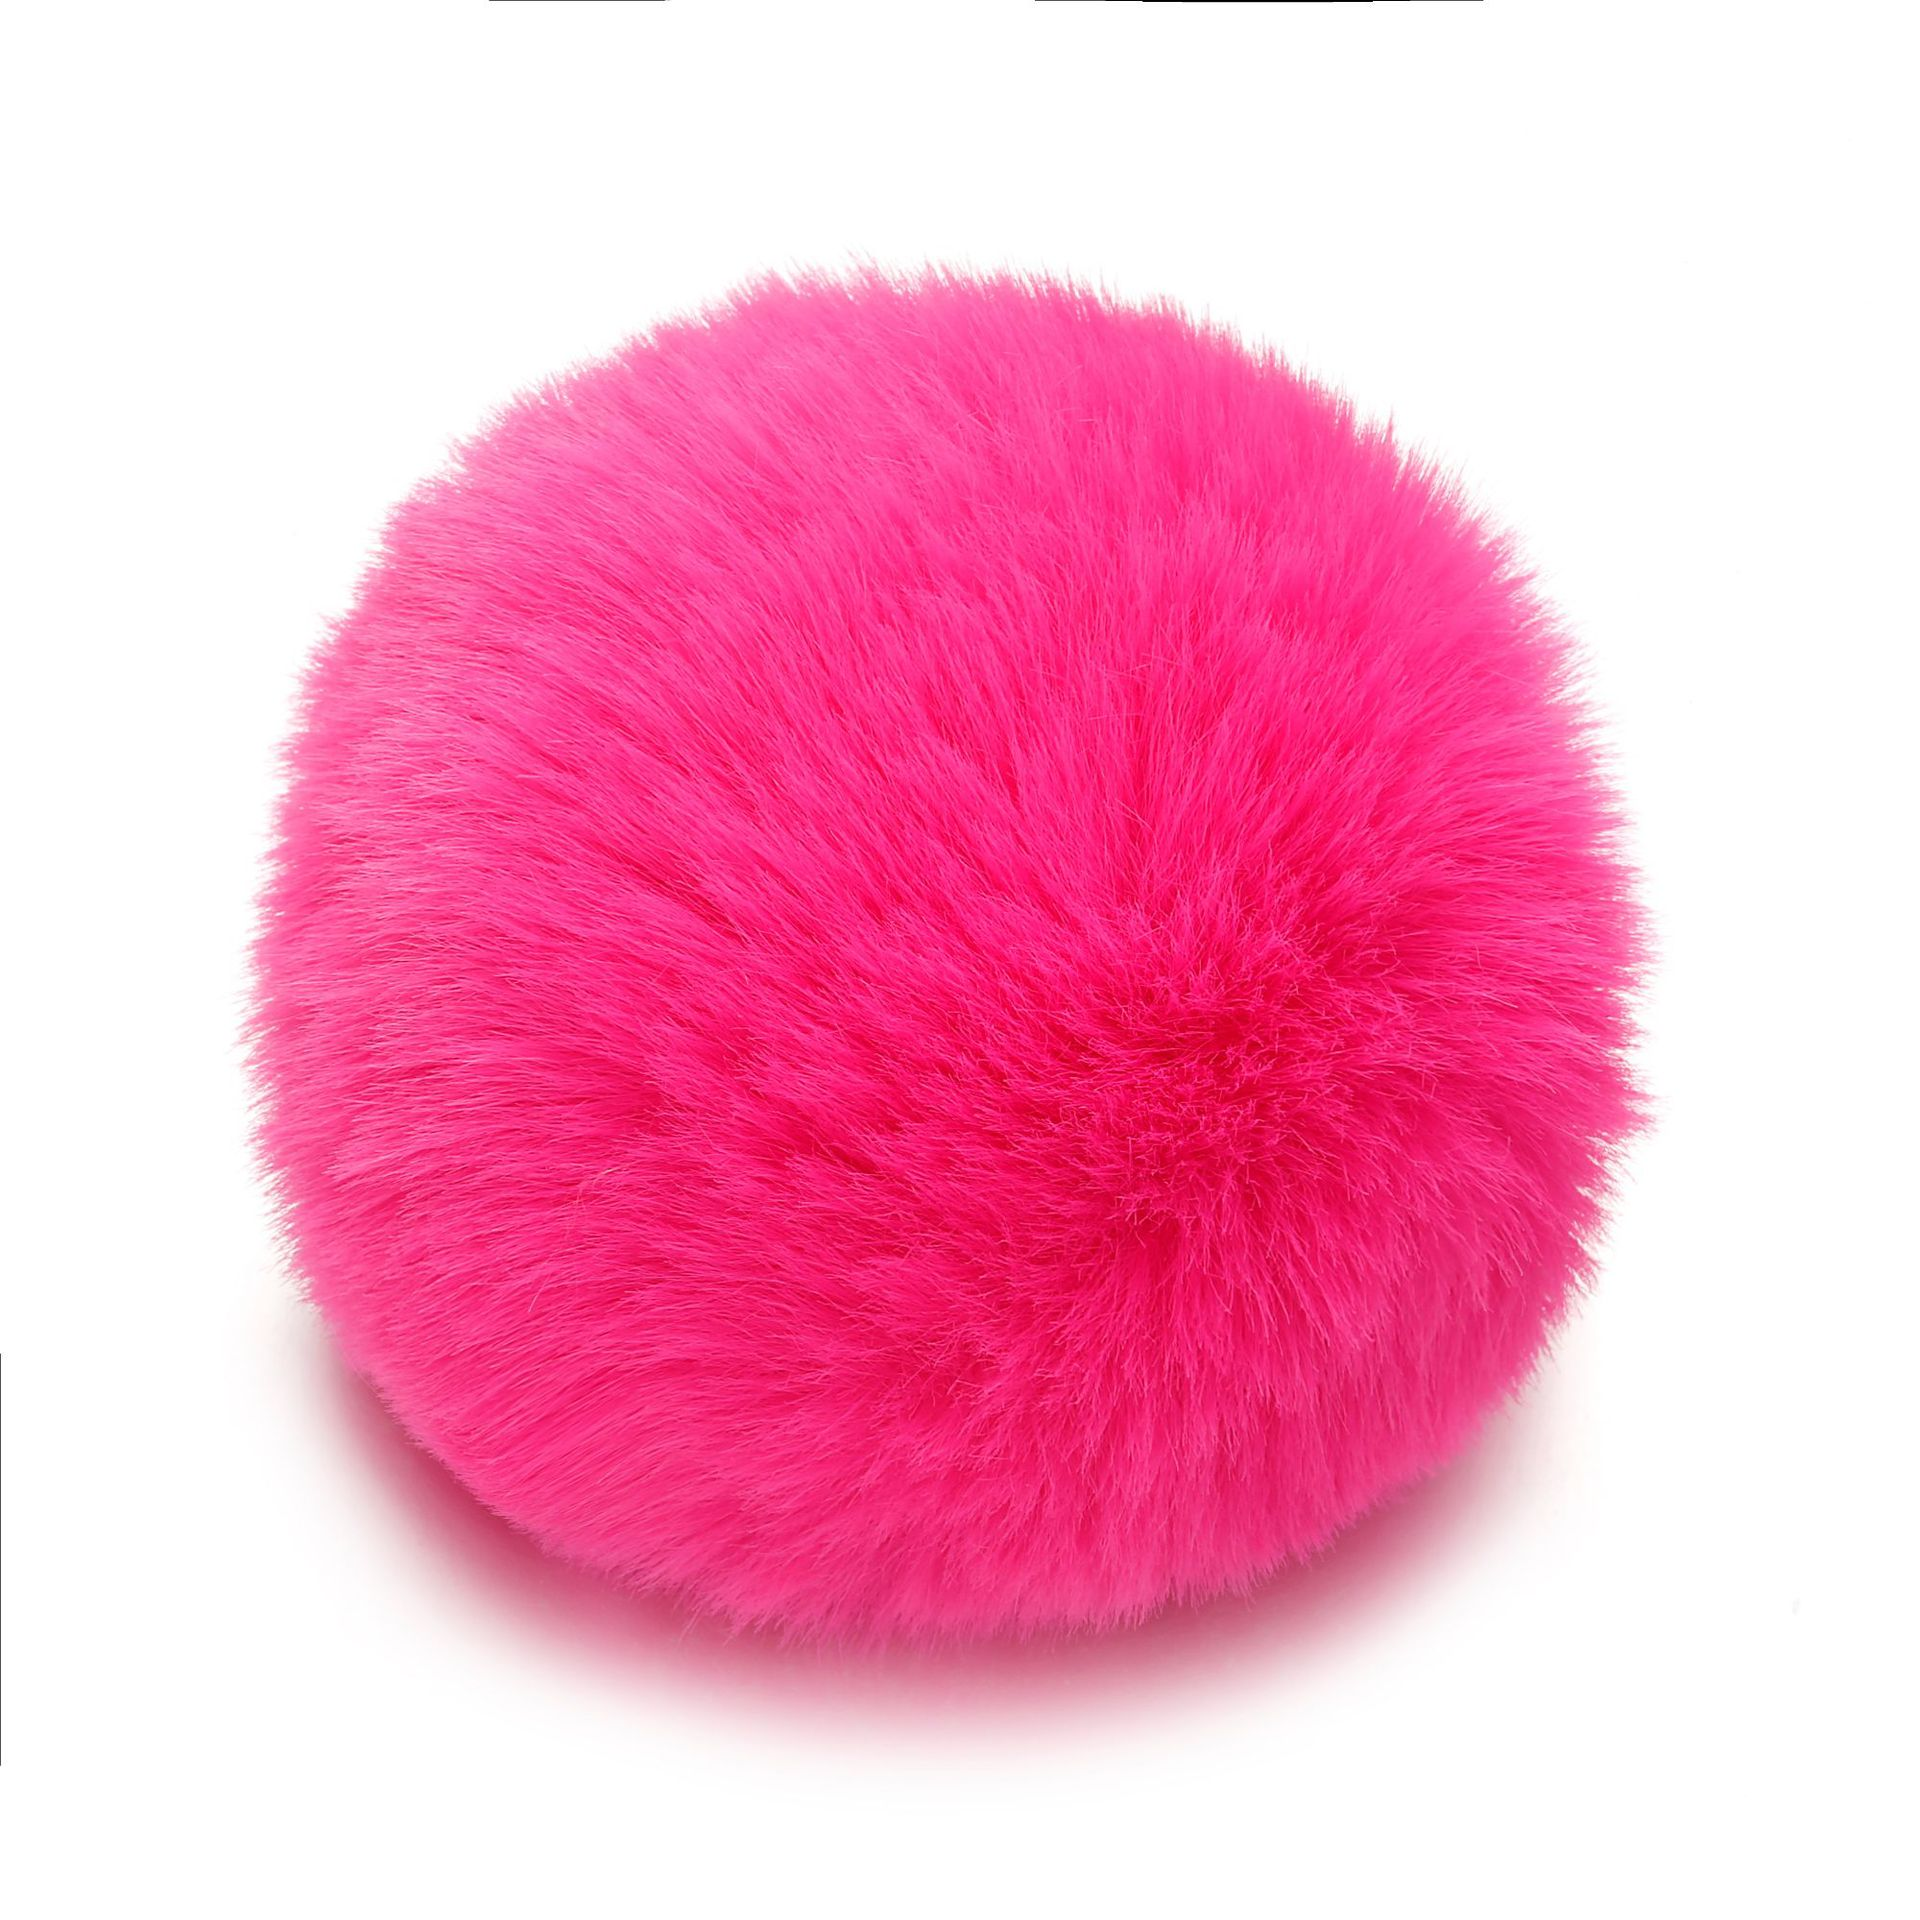 8CM Diy Fluffy Faux Rex Rabbit Fur Ball Pom Pom Keychain Women Bag Charms Man Trinket Keyring Hare Toy Dress Wedding Party Gift in Key Chains from Jewelry Accessories